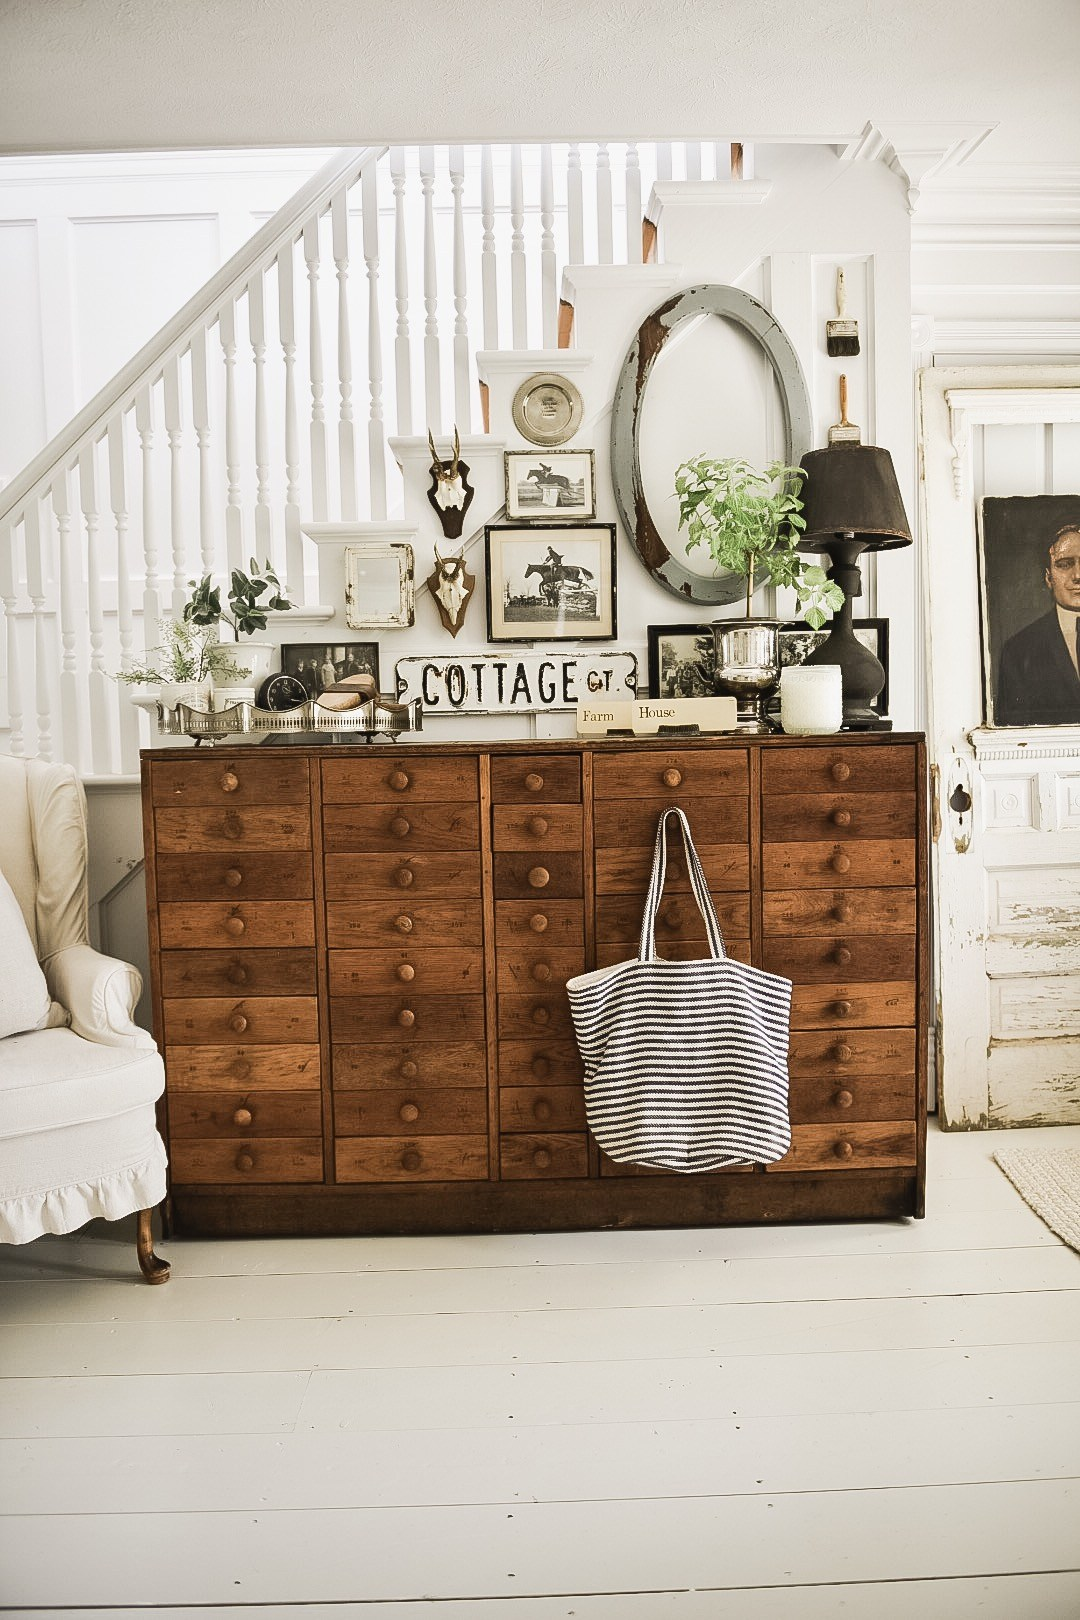 This rustic farmhouse style gallery wall has so many stunning elements, like the centerpiece storage cabinet